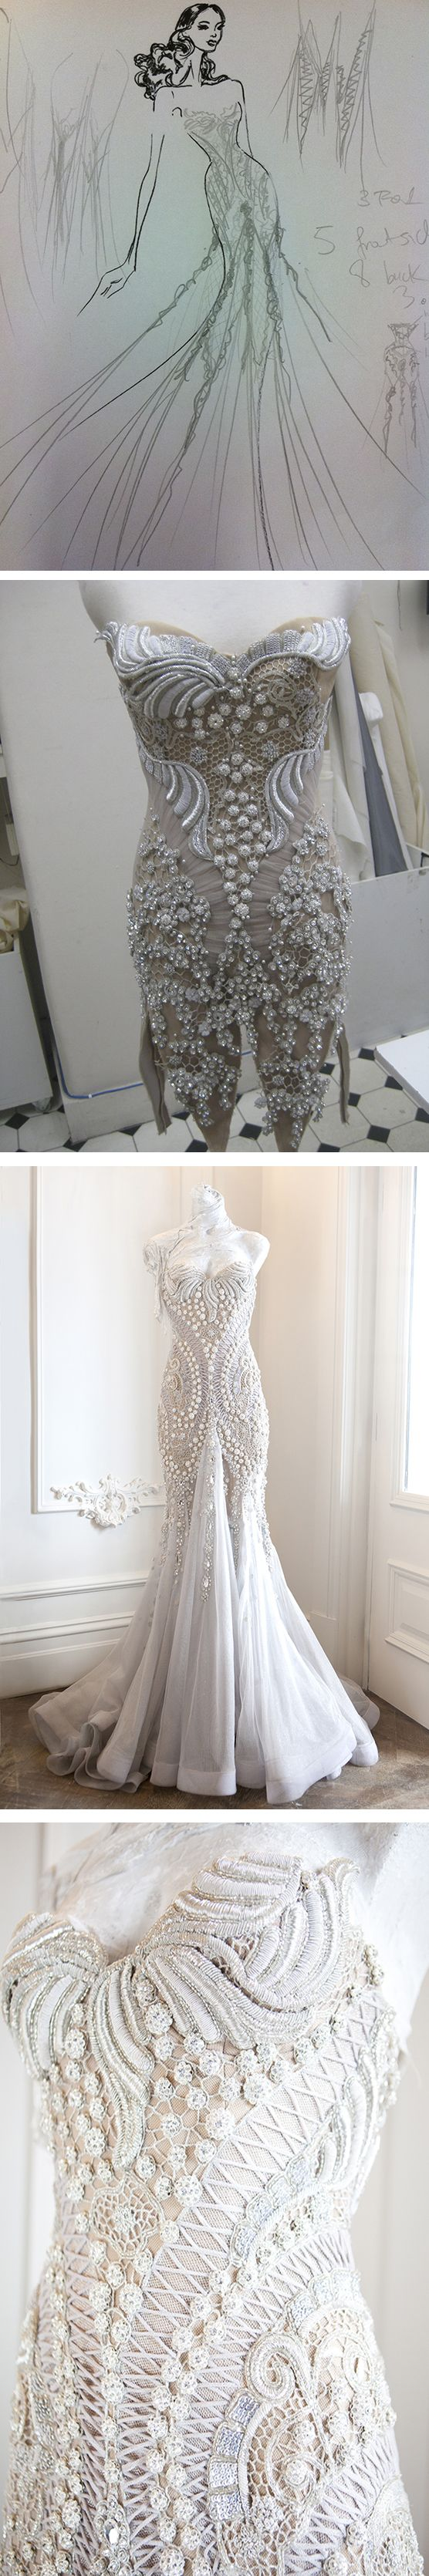 The style of the dress is pretty but not the designs. J'Aton Couture - wowzer!